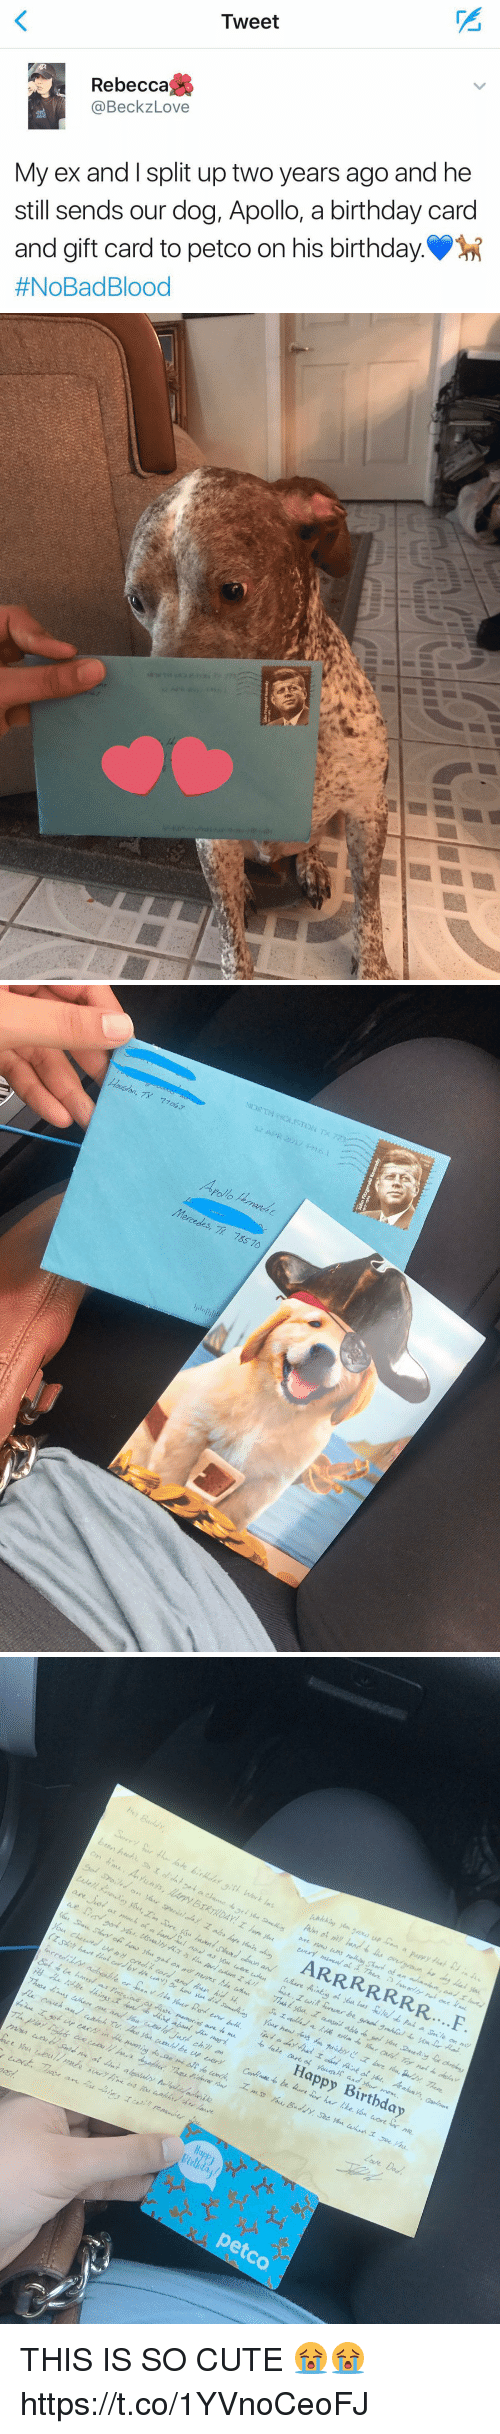 "Inv: Tweet  Rebecca  @Beckz Love  My ex and I split up two years ago and he  still sends our dog, Apollo, a birthday card  and gift card to petco on his birthday  #NoBad Blood   Fangerald Kennedy   Apollo  Mercedes, 785 10   On lieu Avuan, LArpy BERT DAY!工hare洳A eAAd  are Just  ybu, US a)Iy M7 ps tha Aw/ cん ez.hen mueZuiR goru er be gae, 3-und-o yourr Hal  4m> 》hat ""gatan wifne-ver Me a체 7hales, .ZuasnV4bledom,éu .Decay-Granky  wmyonofxcaa/are/Aun hid从品ェa/¼ノ晓IA eWadoNm/card 7,ynsidon inv,  ineree以/y Achable or few/NaNmd rPrr / e-w ea/oday-Aad d., ant d id. Aalena  Arakay's, Carmen  Happy Birthday  Caud and amich TV ~儿e aeukWe w e-cry hawide hare *r he/ Zke cán core w me  エ28t,ss /ai,syLa./X-De y&a ヱNk¼u.  fee Abu乙eeee1/ m/e zeeryAmarGu amhhe/dwave  CANdi- 77ay art-AL ~,,ひゴ ,ツノemmee  Berldar  petco  r THIS IS SO CUTE 😭😭 https://t.co/1YVnoCeoFJ"